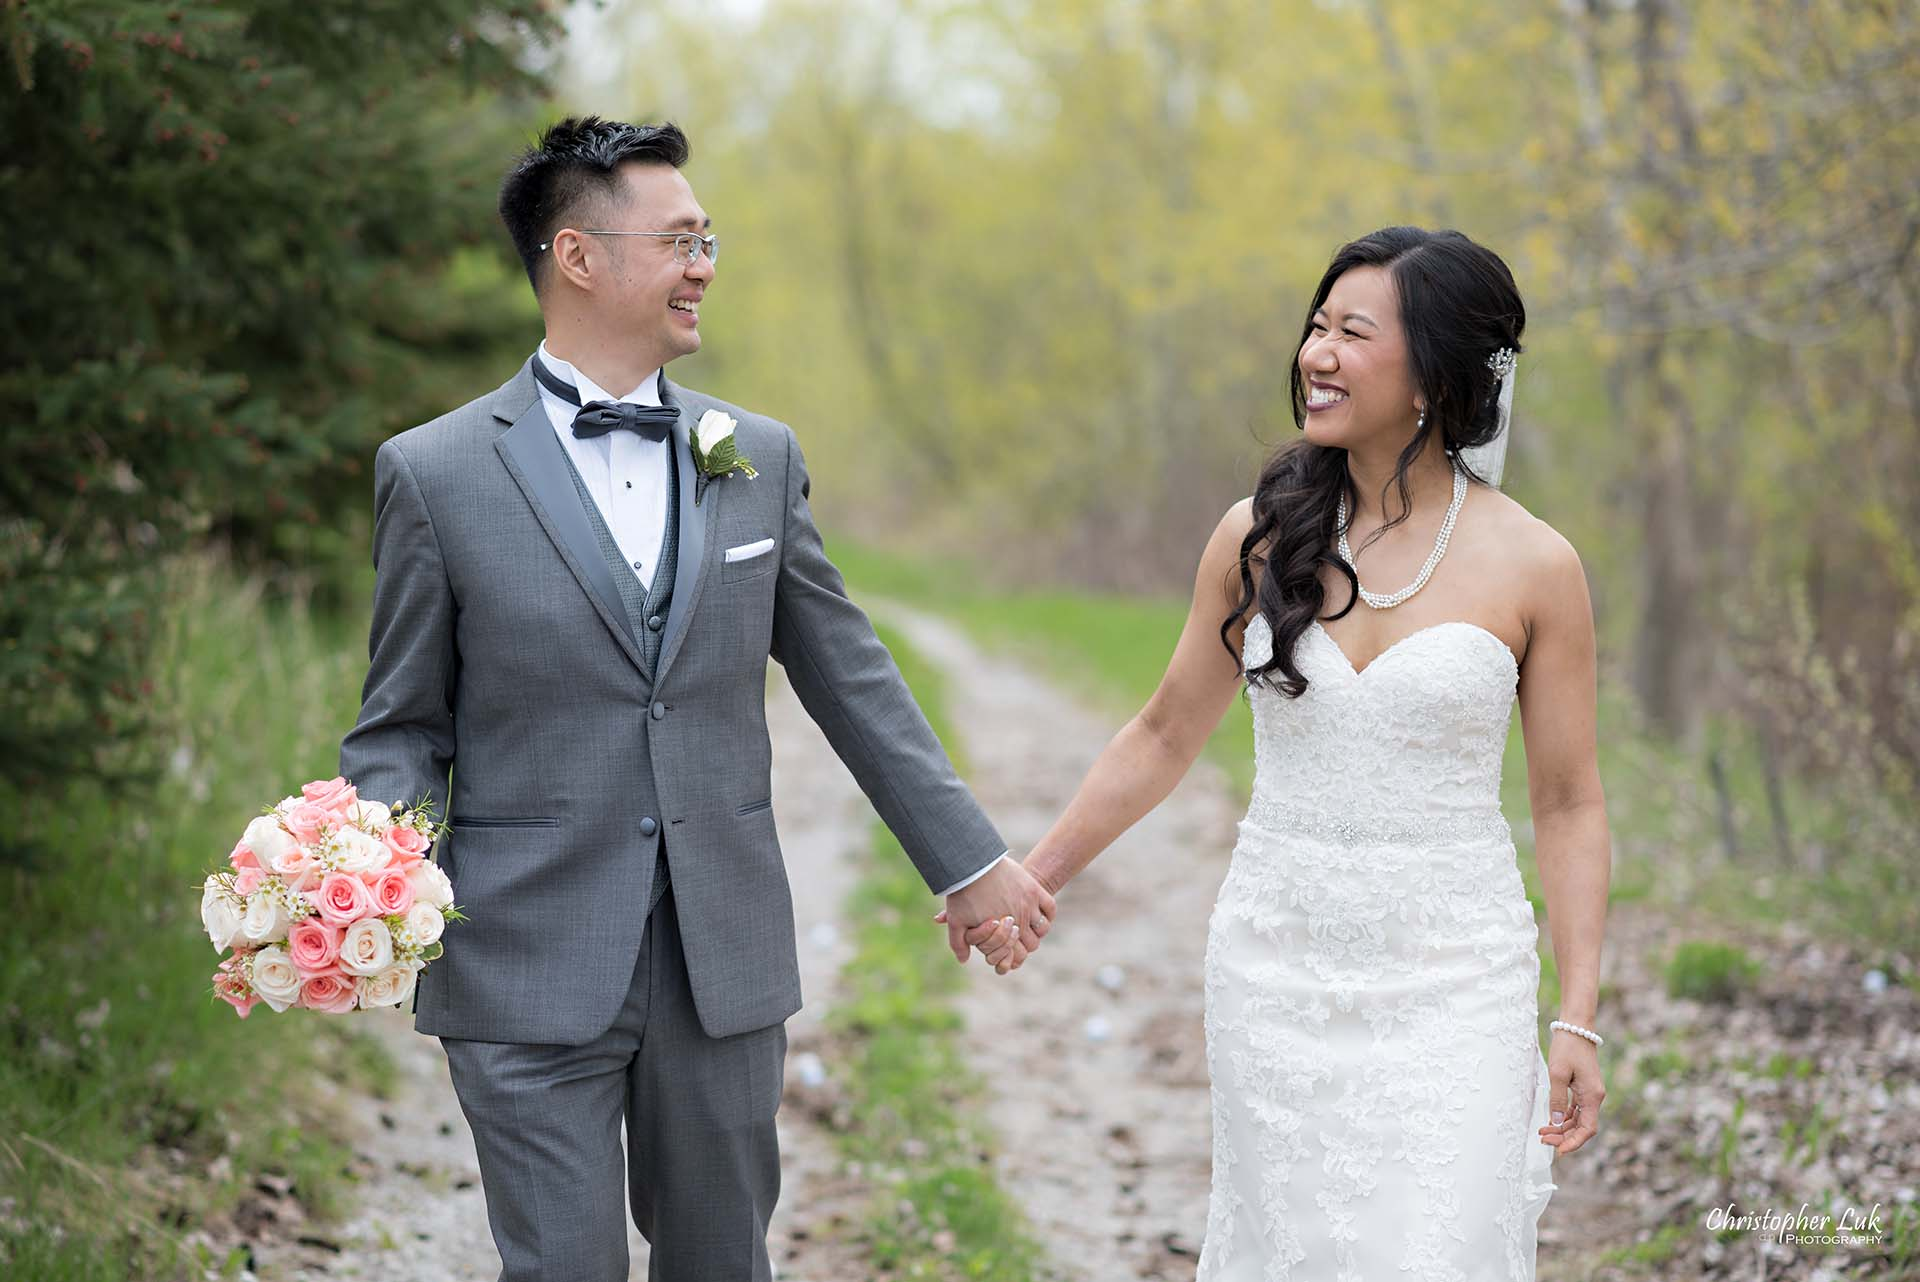 Christopher Luk Toronto Wedding Photographer Eagles Nest Golf Club Course Together Bride Groom Hold Hug Candid Natural Photojournalistic Walking Bouquet Flowers